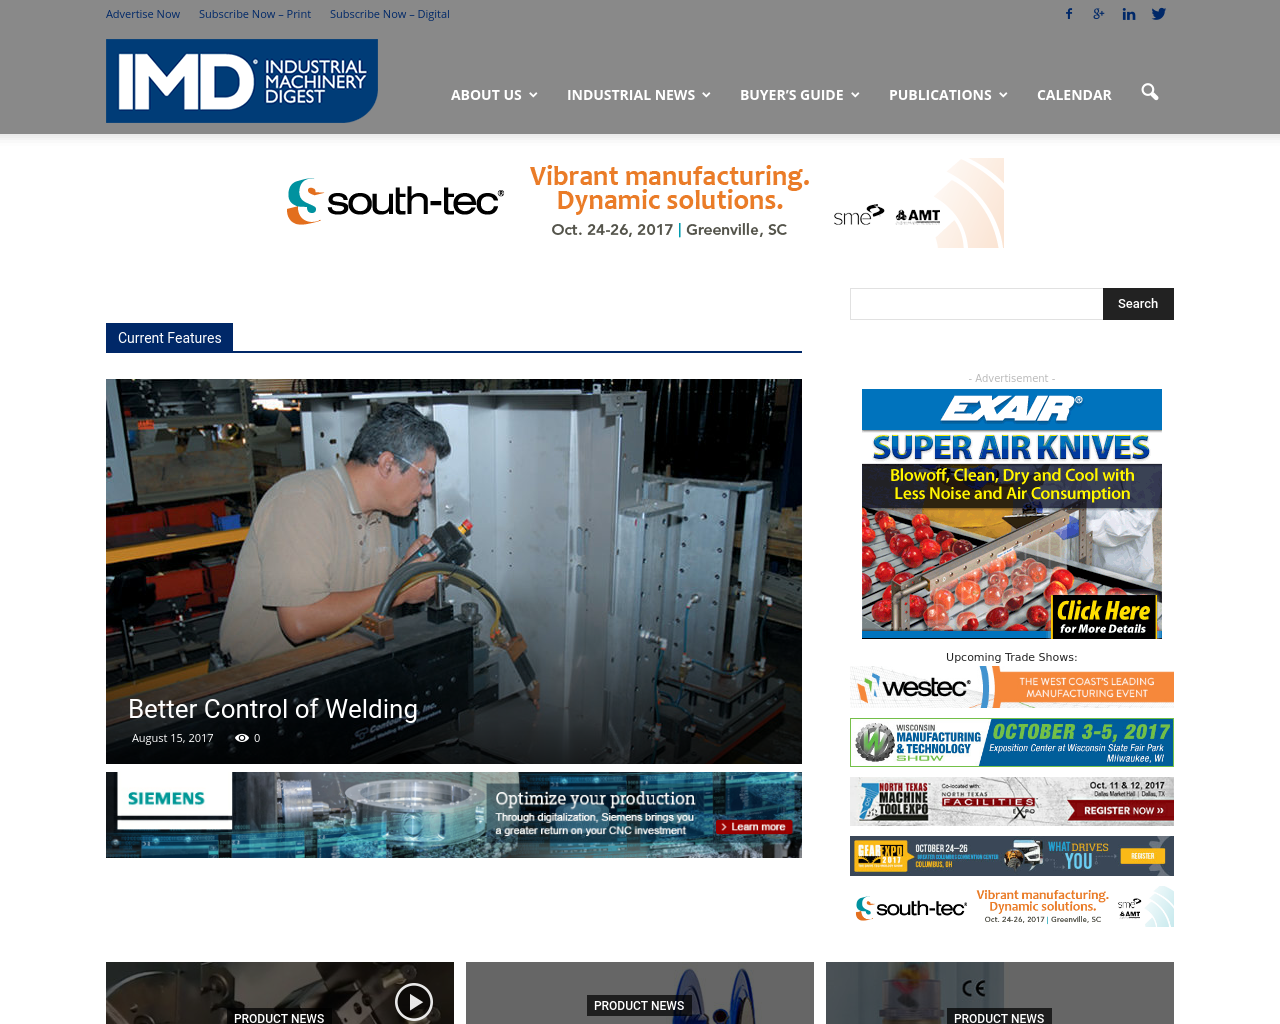 Industry-Machinery-Digest-Advertising-Reviews-Pricing